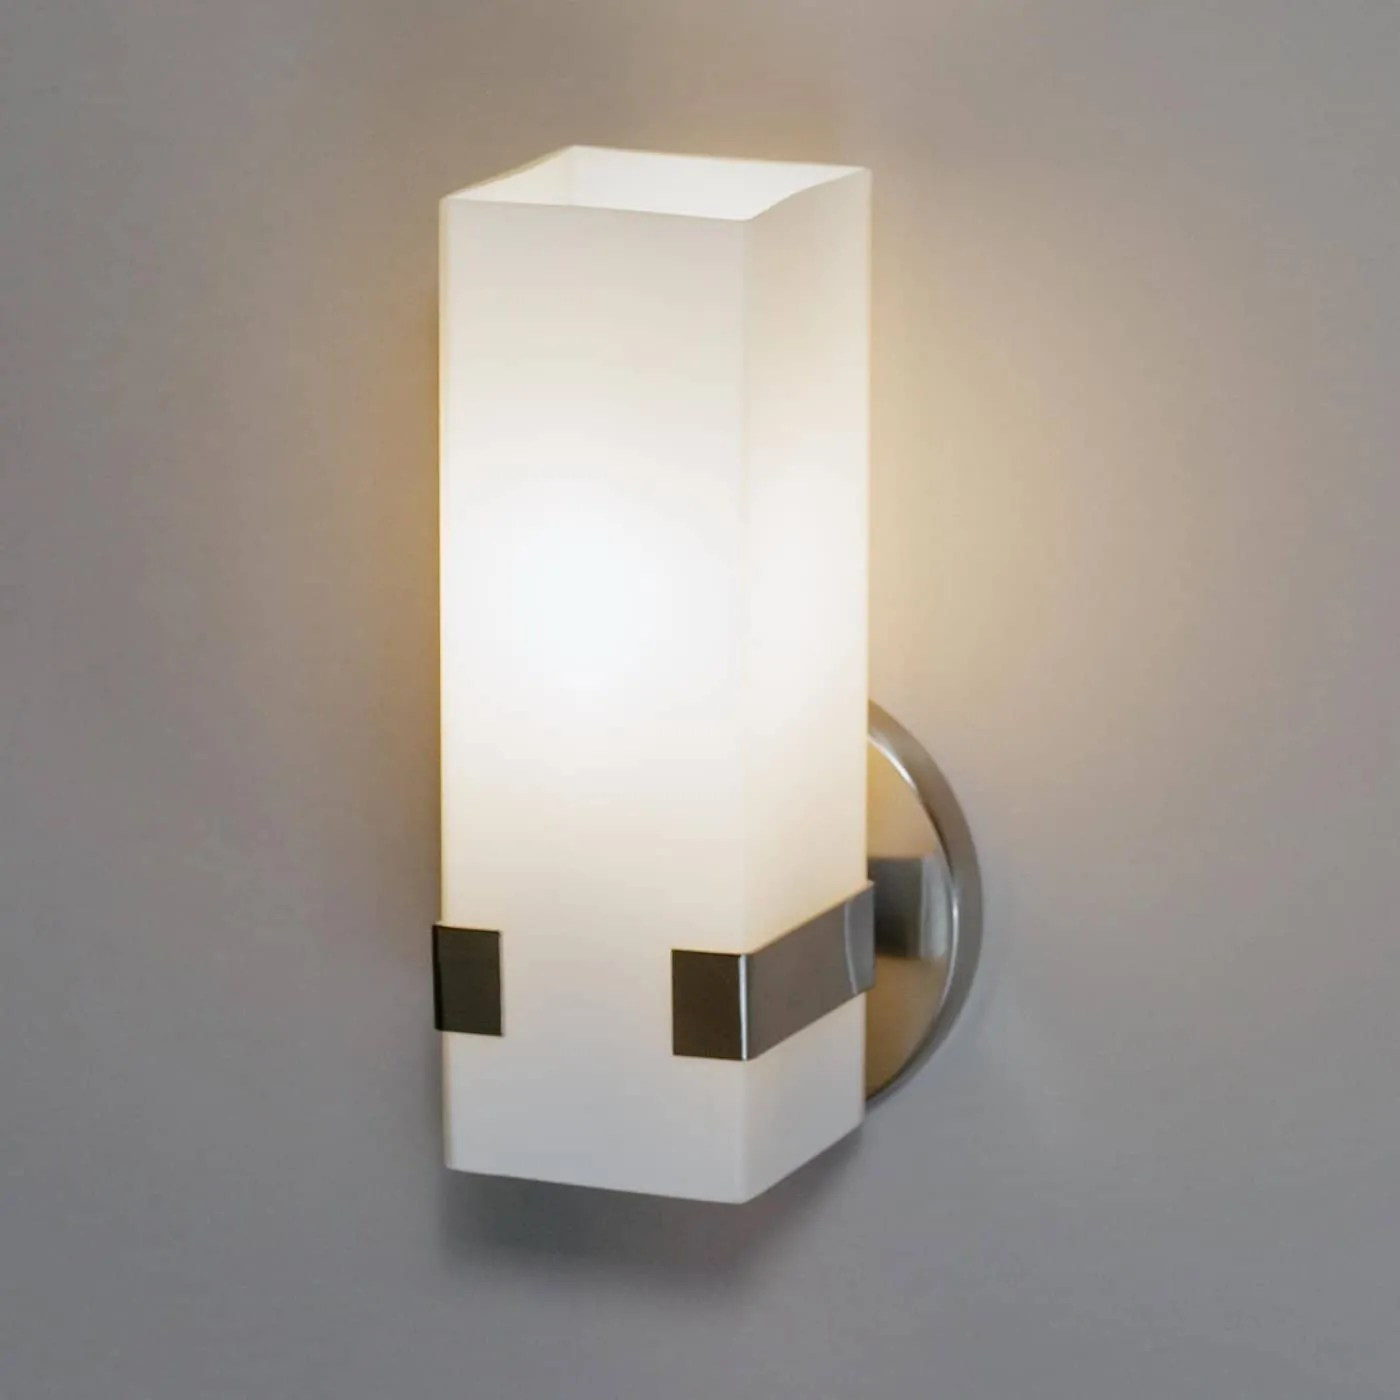 Images Of Wall Sconces Stylish And Modern Wall Sconces Idea Decoration Channel